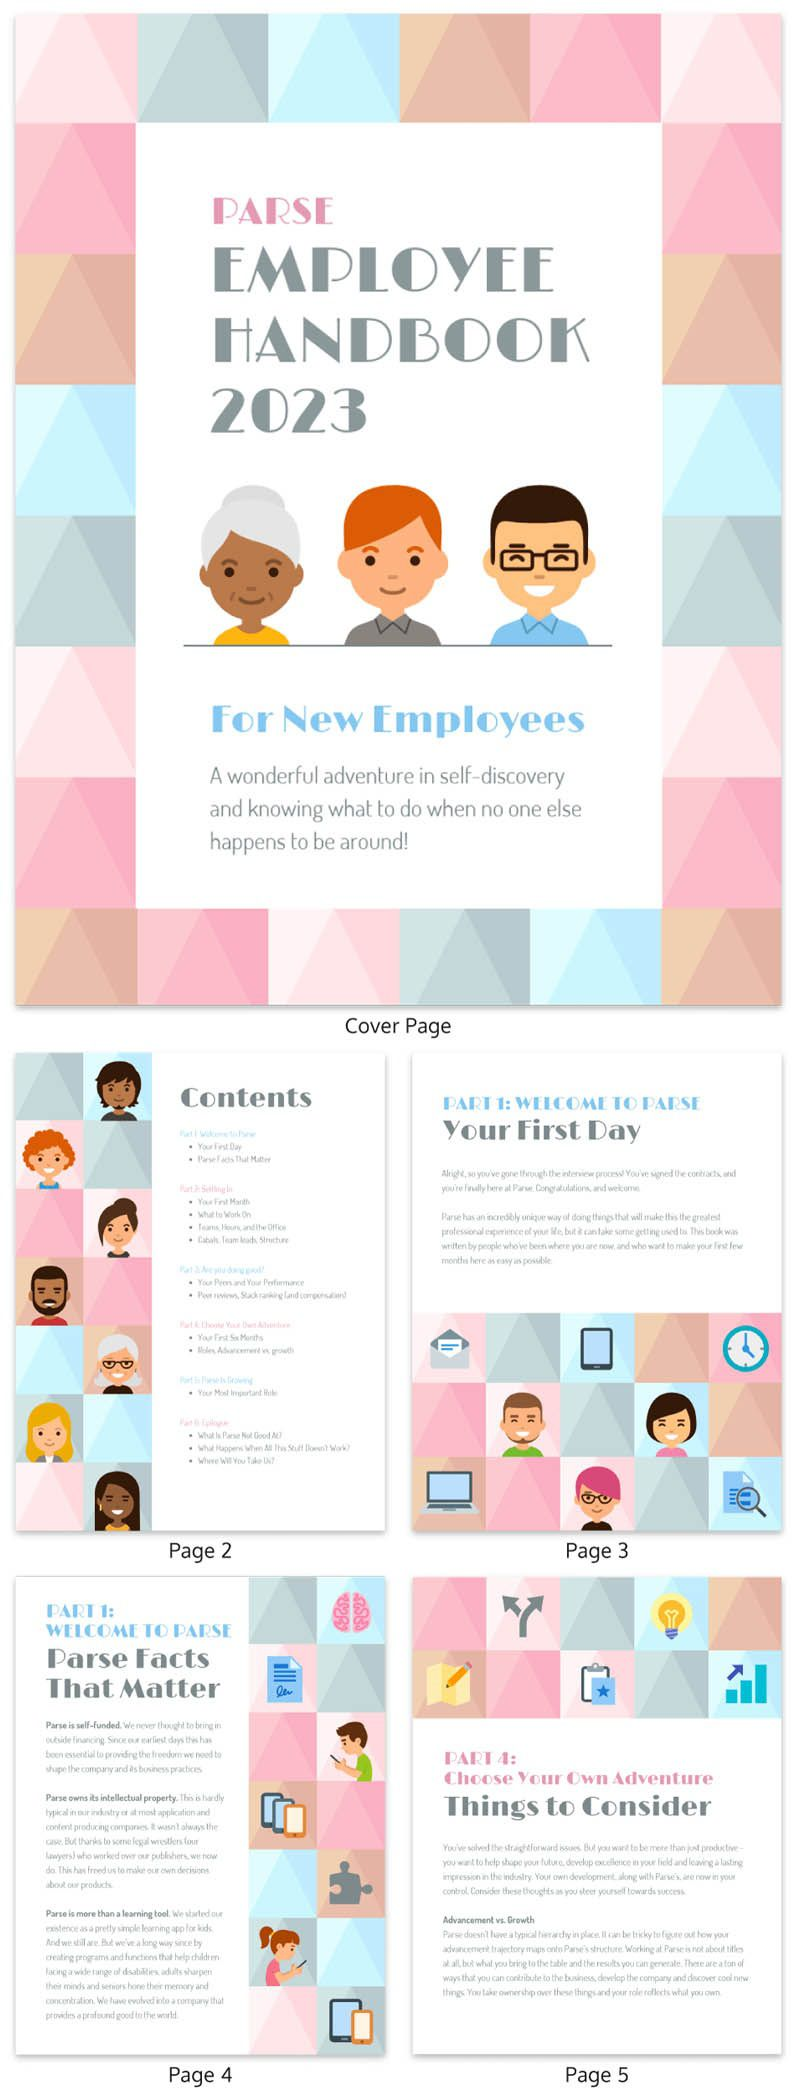 008 Beautiful Free Employee Handbook Template Photo  Templates Sample Canada Philippine In SingaporeFull